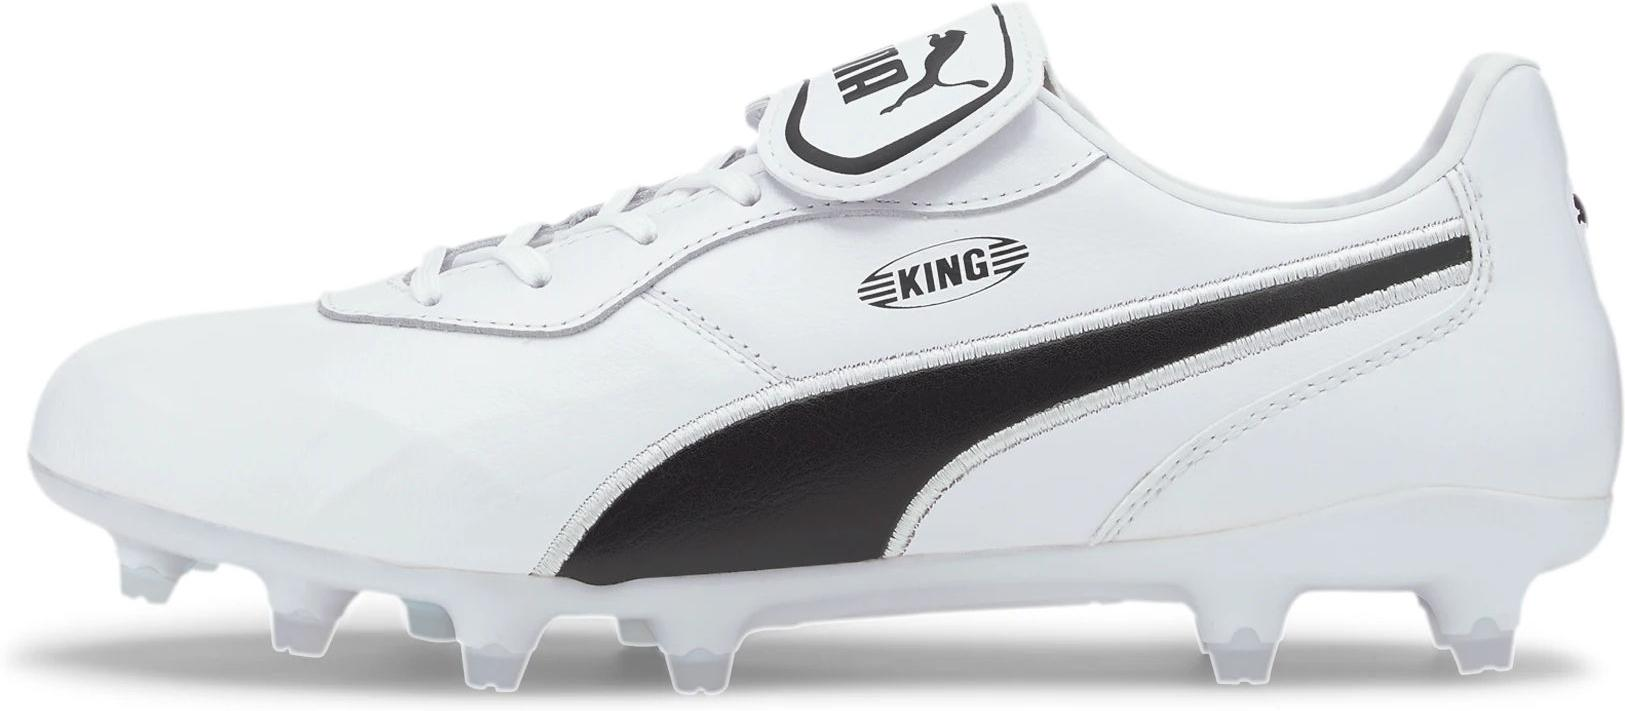 Ghete de fotbal Puma KING Top FG